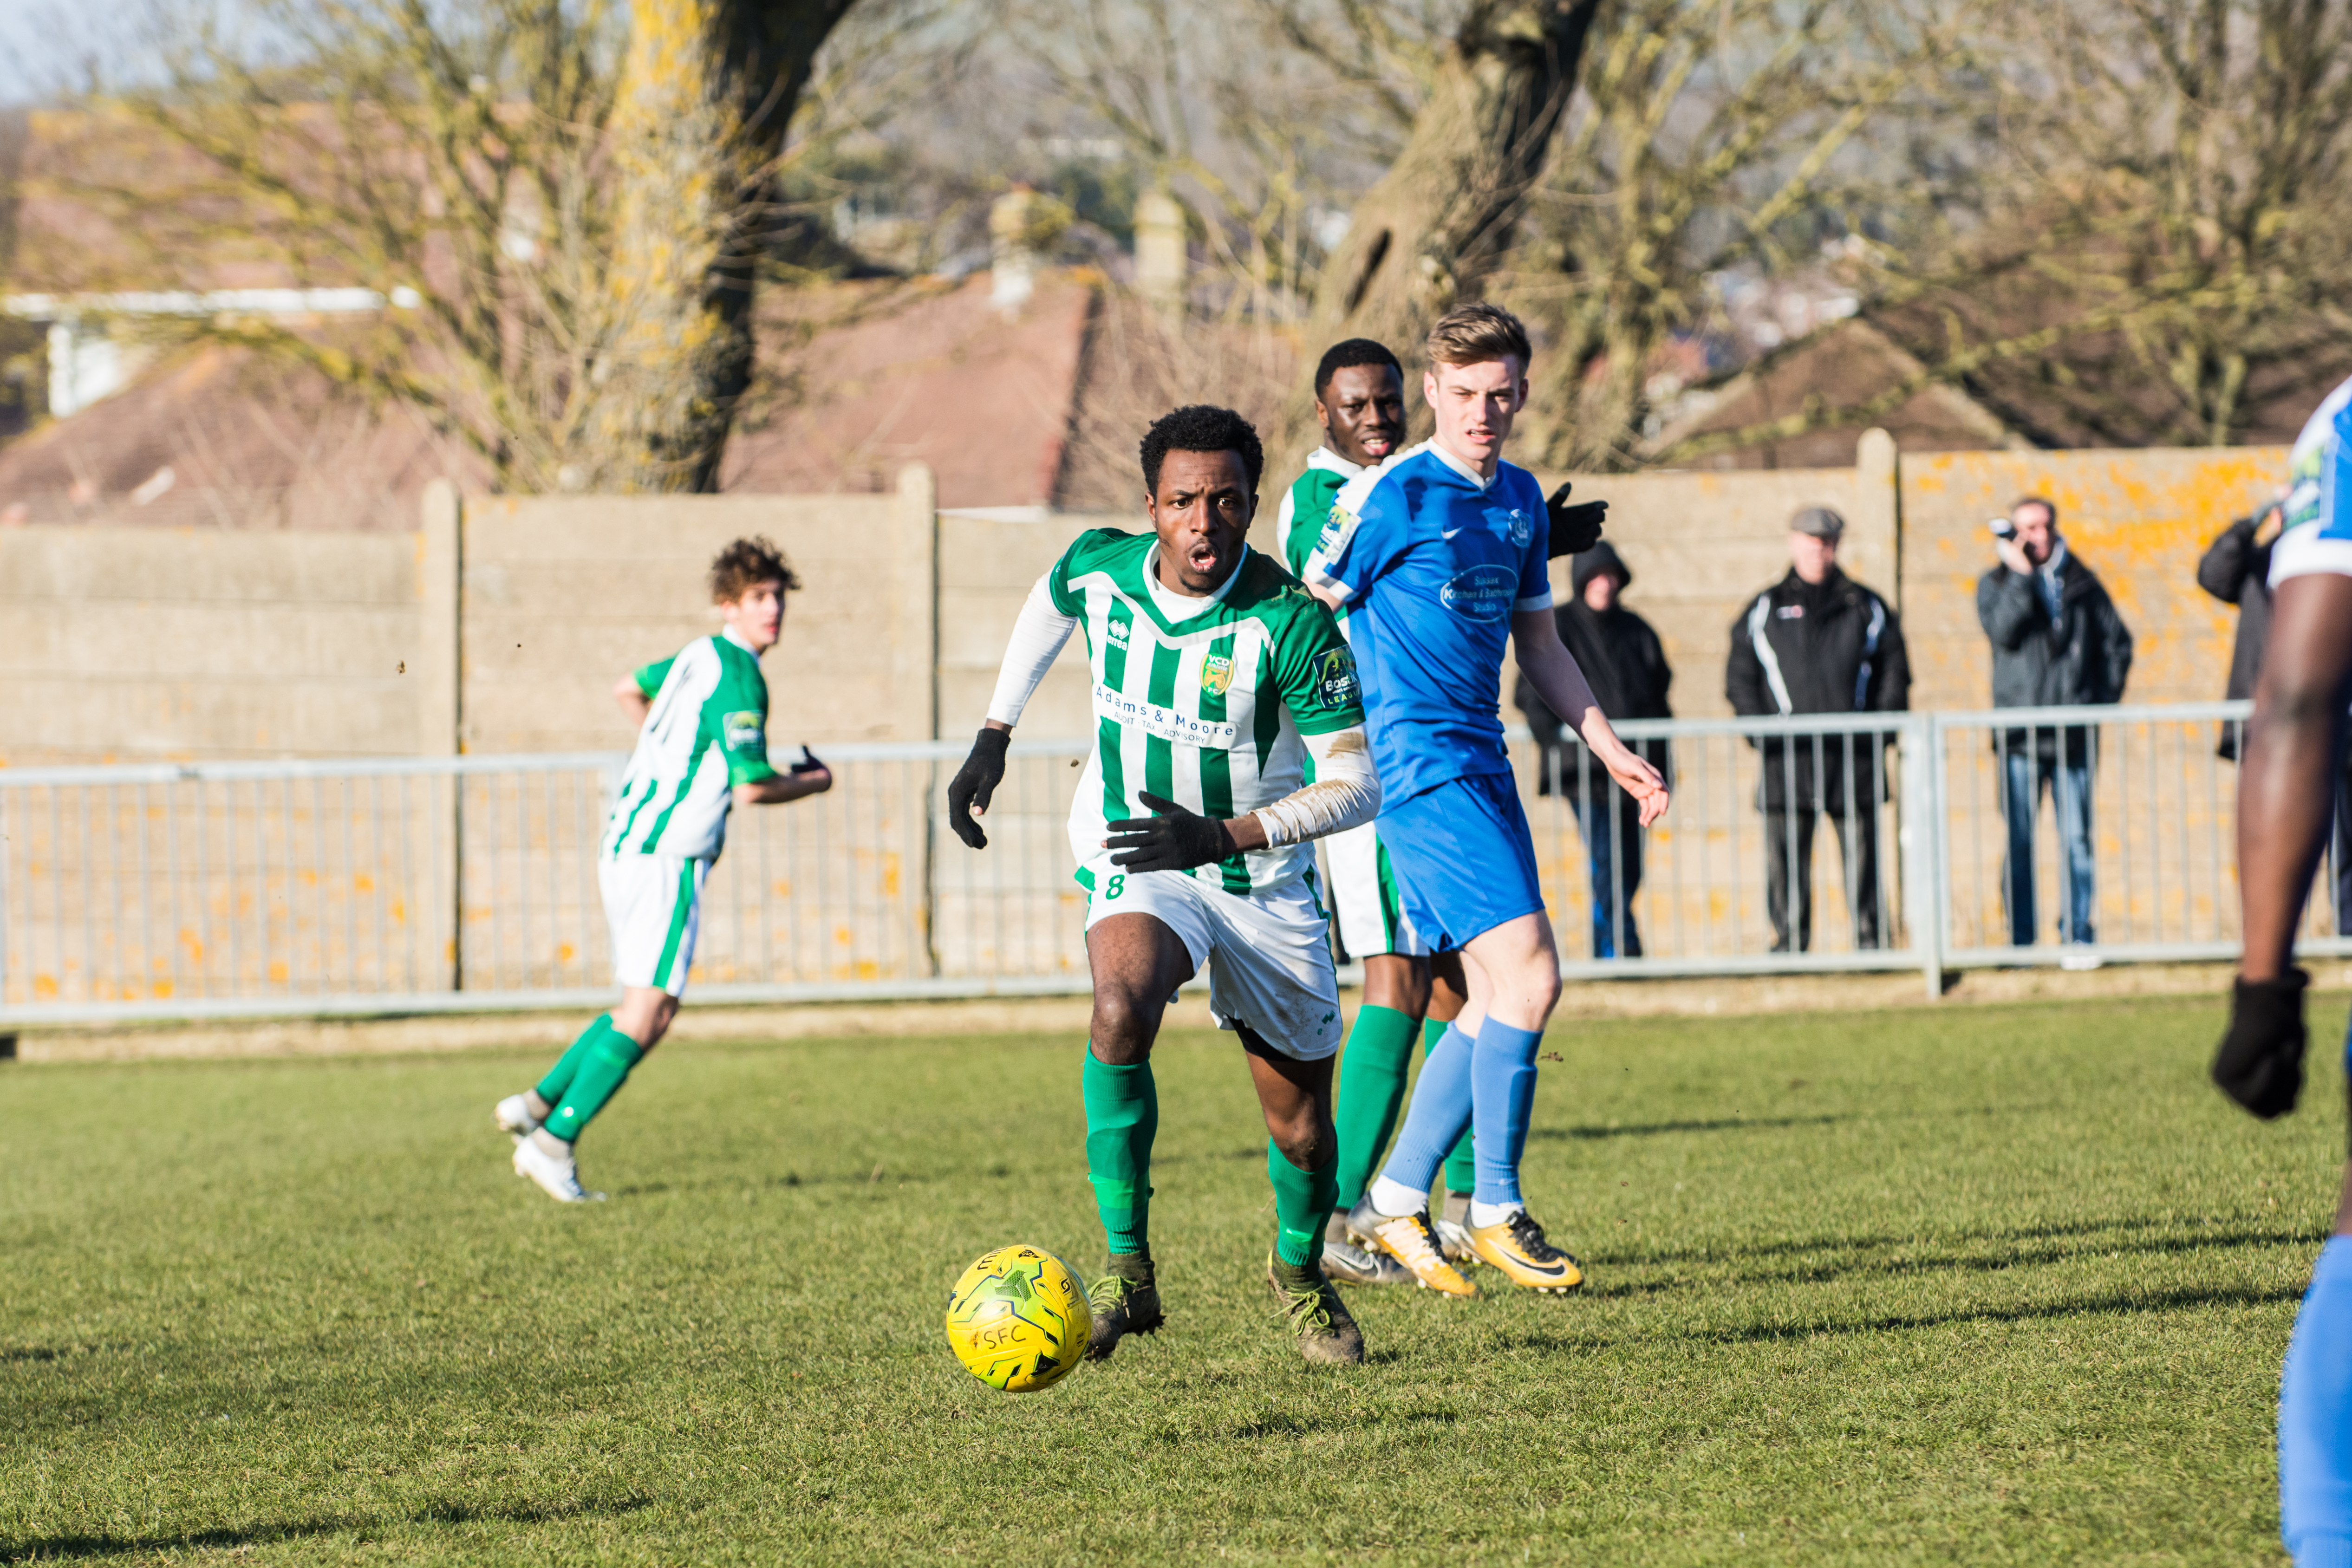 Shoreham FC vs VCD Athletic FC 24.02.18 42 DAVID_JEFFERY